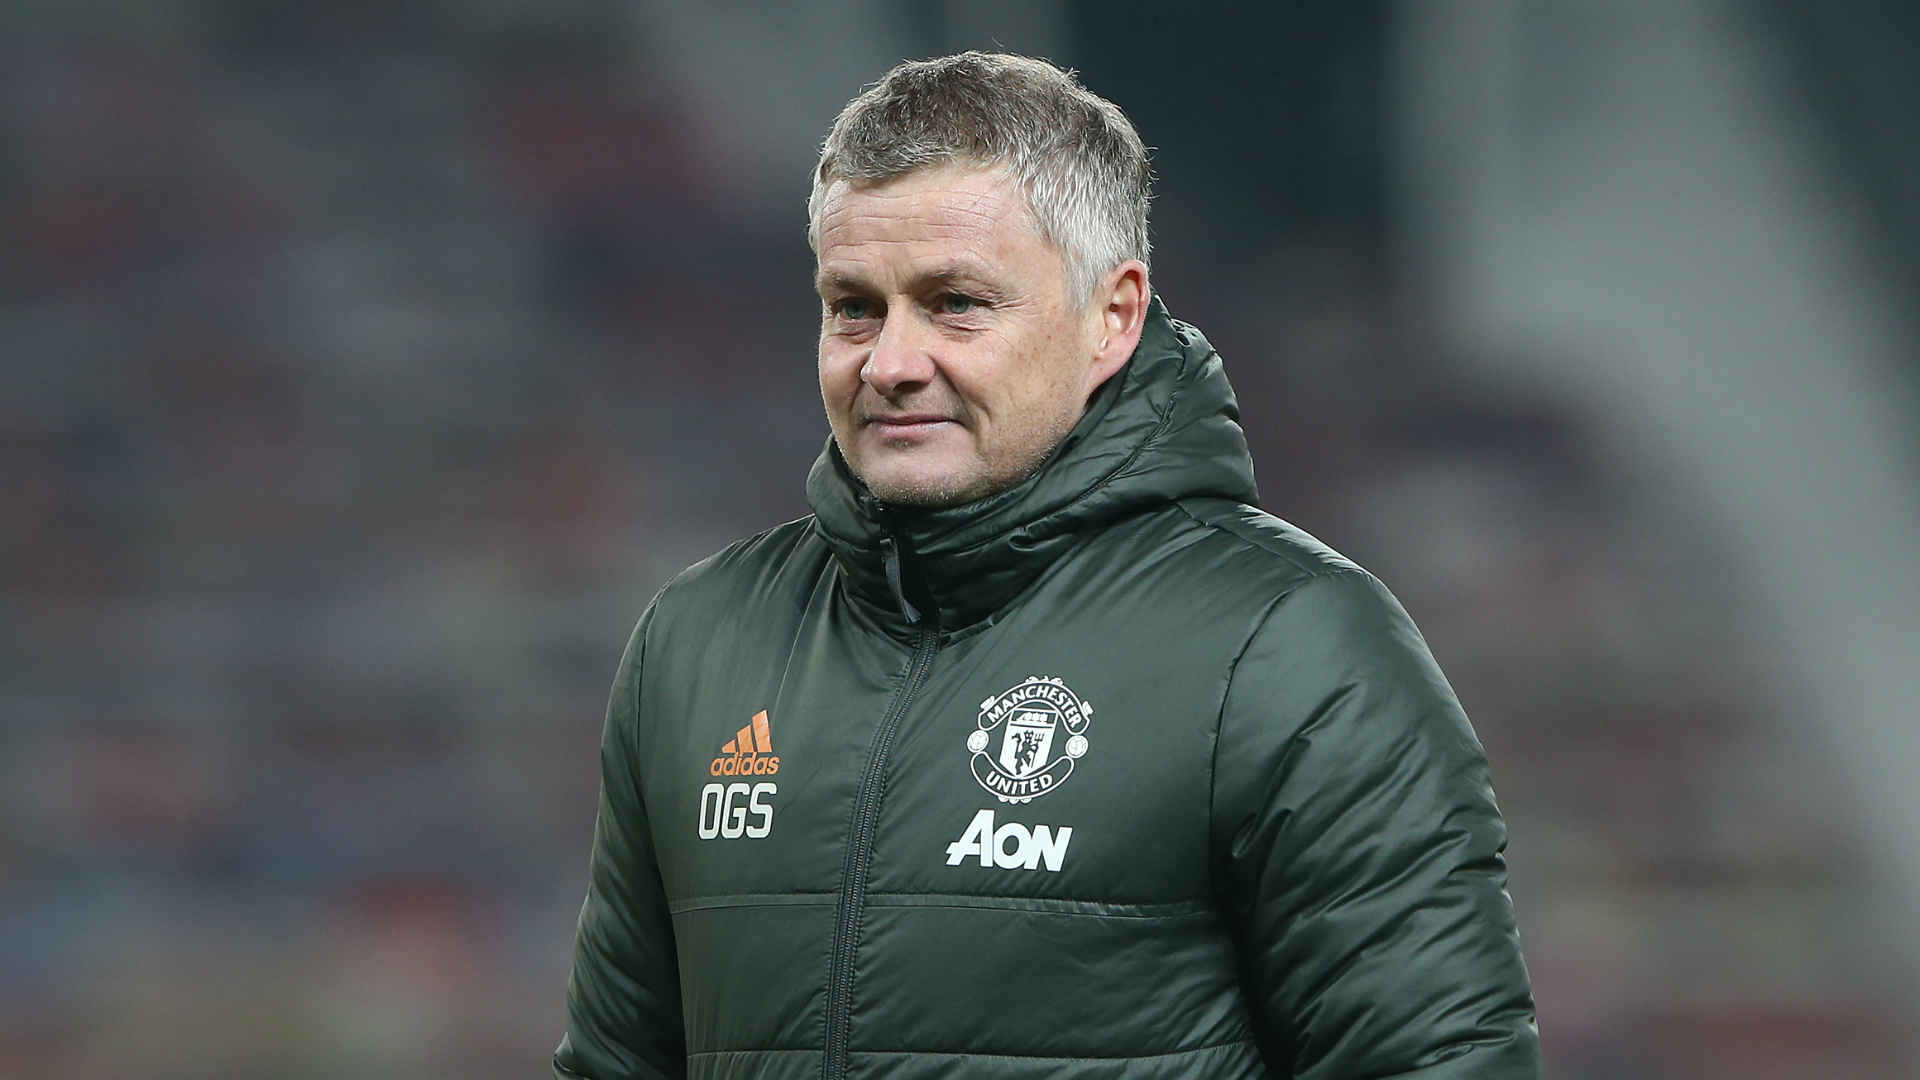 Man United getting closer to targets with Solskjaer in charge - Woodward